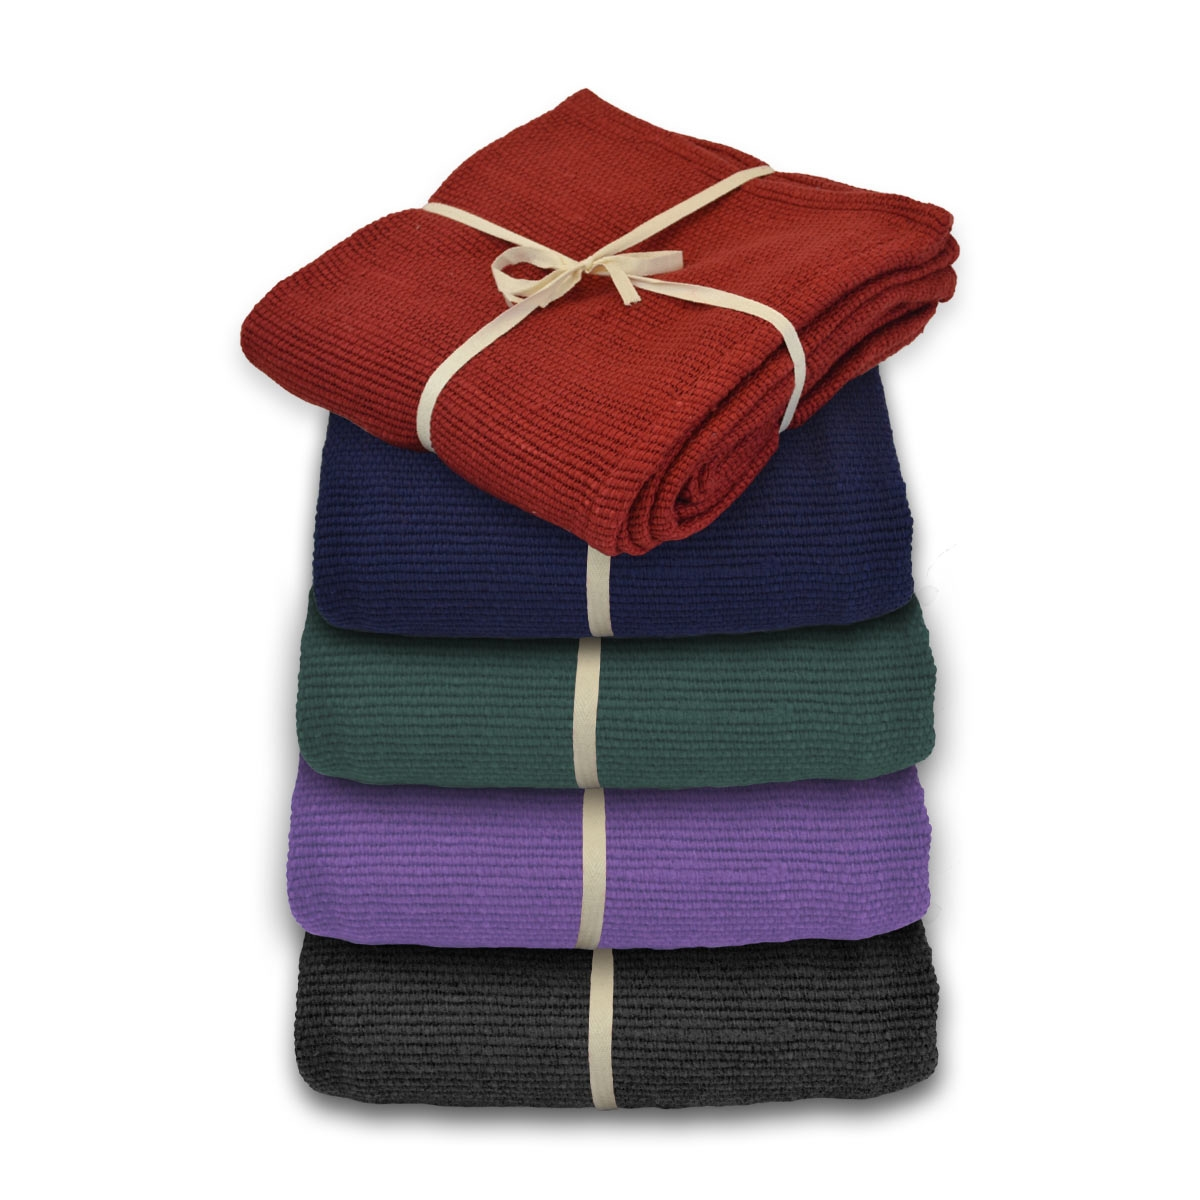 Deluxe Cotton Yoga Blanket without Tassels